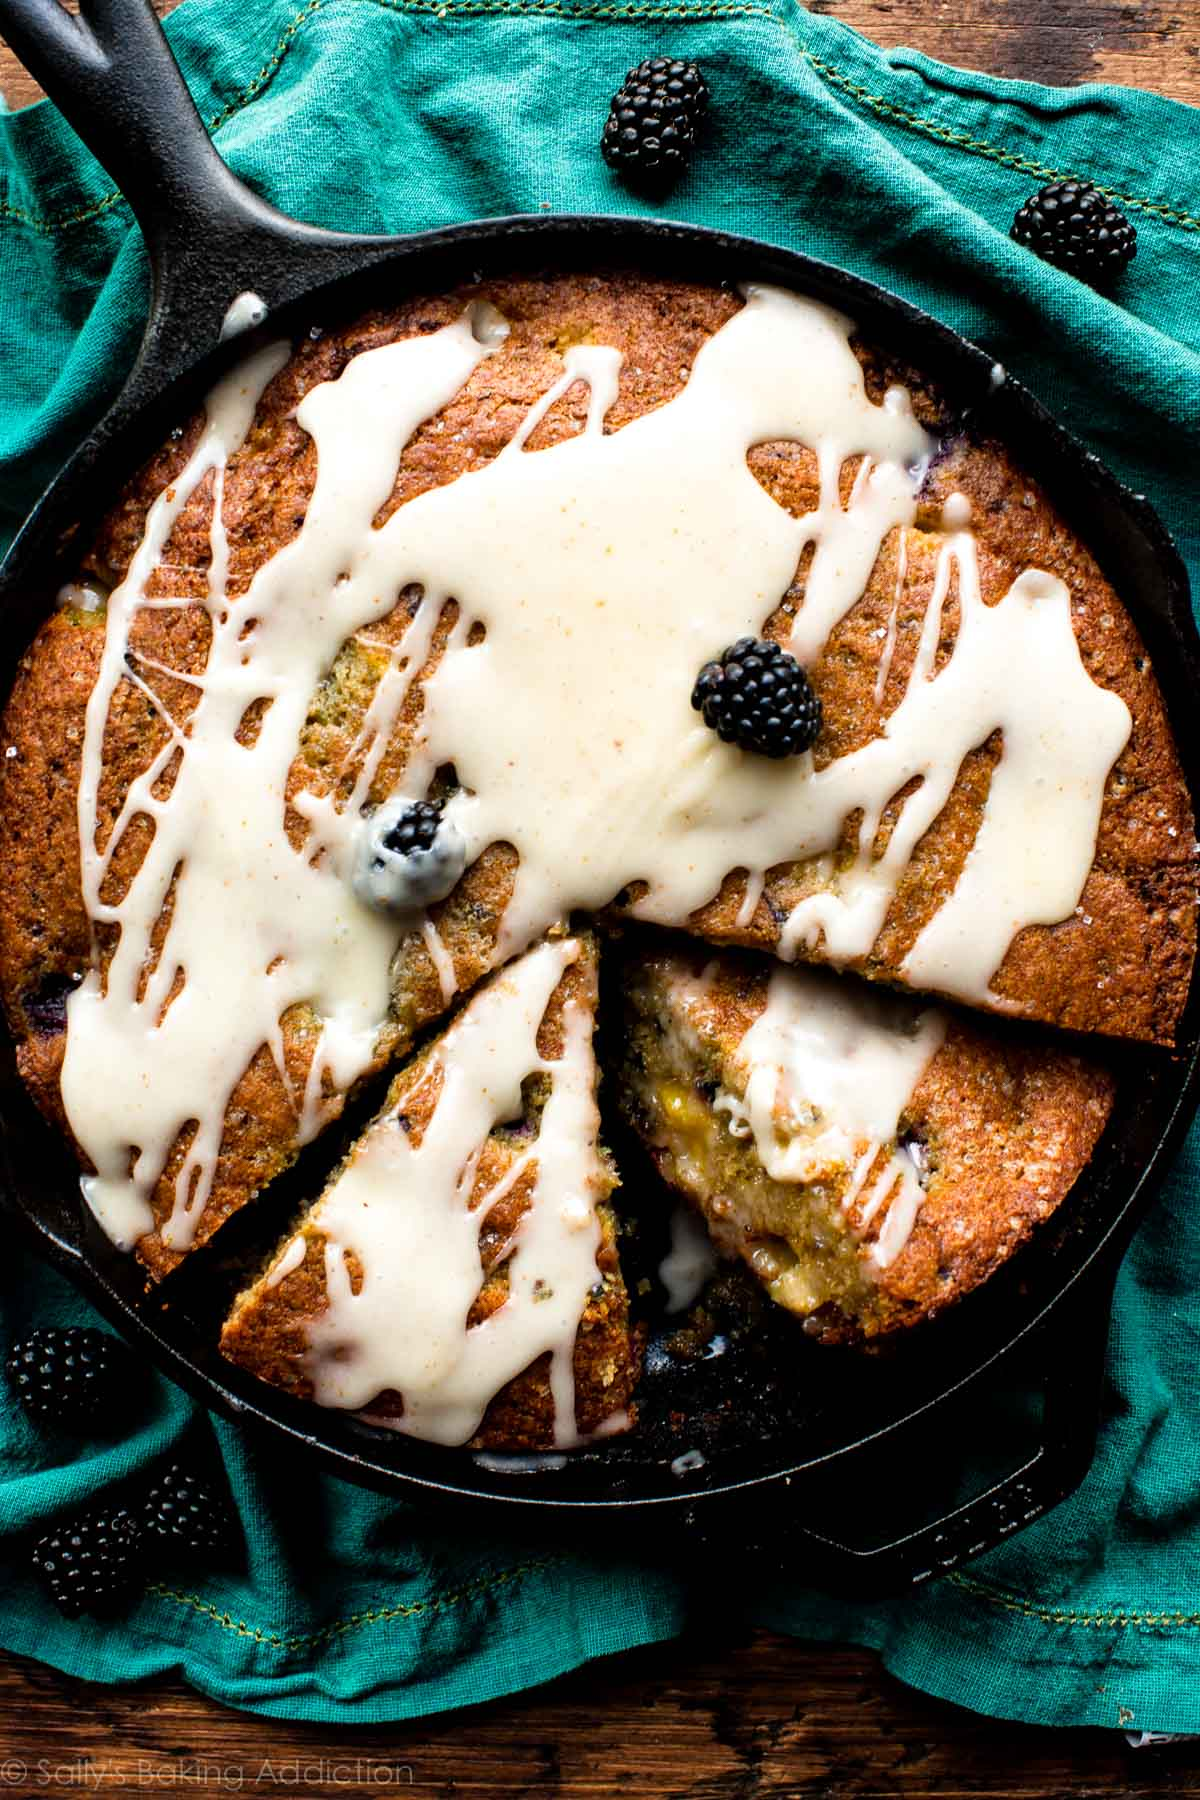 Cornmeal and summer fruit provide a lovely texture to this moist blackberry peach skillet cornmeal cake. Top with brown butter icing for the ultimate treat! Recipe on sallysbakingaddiction.com